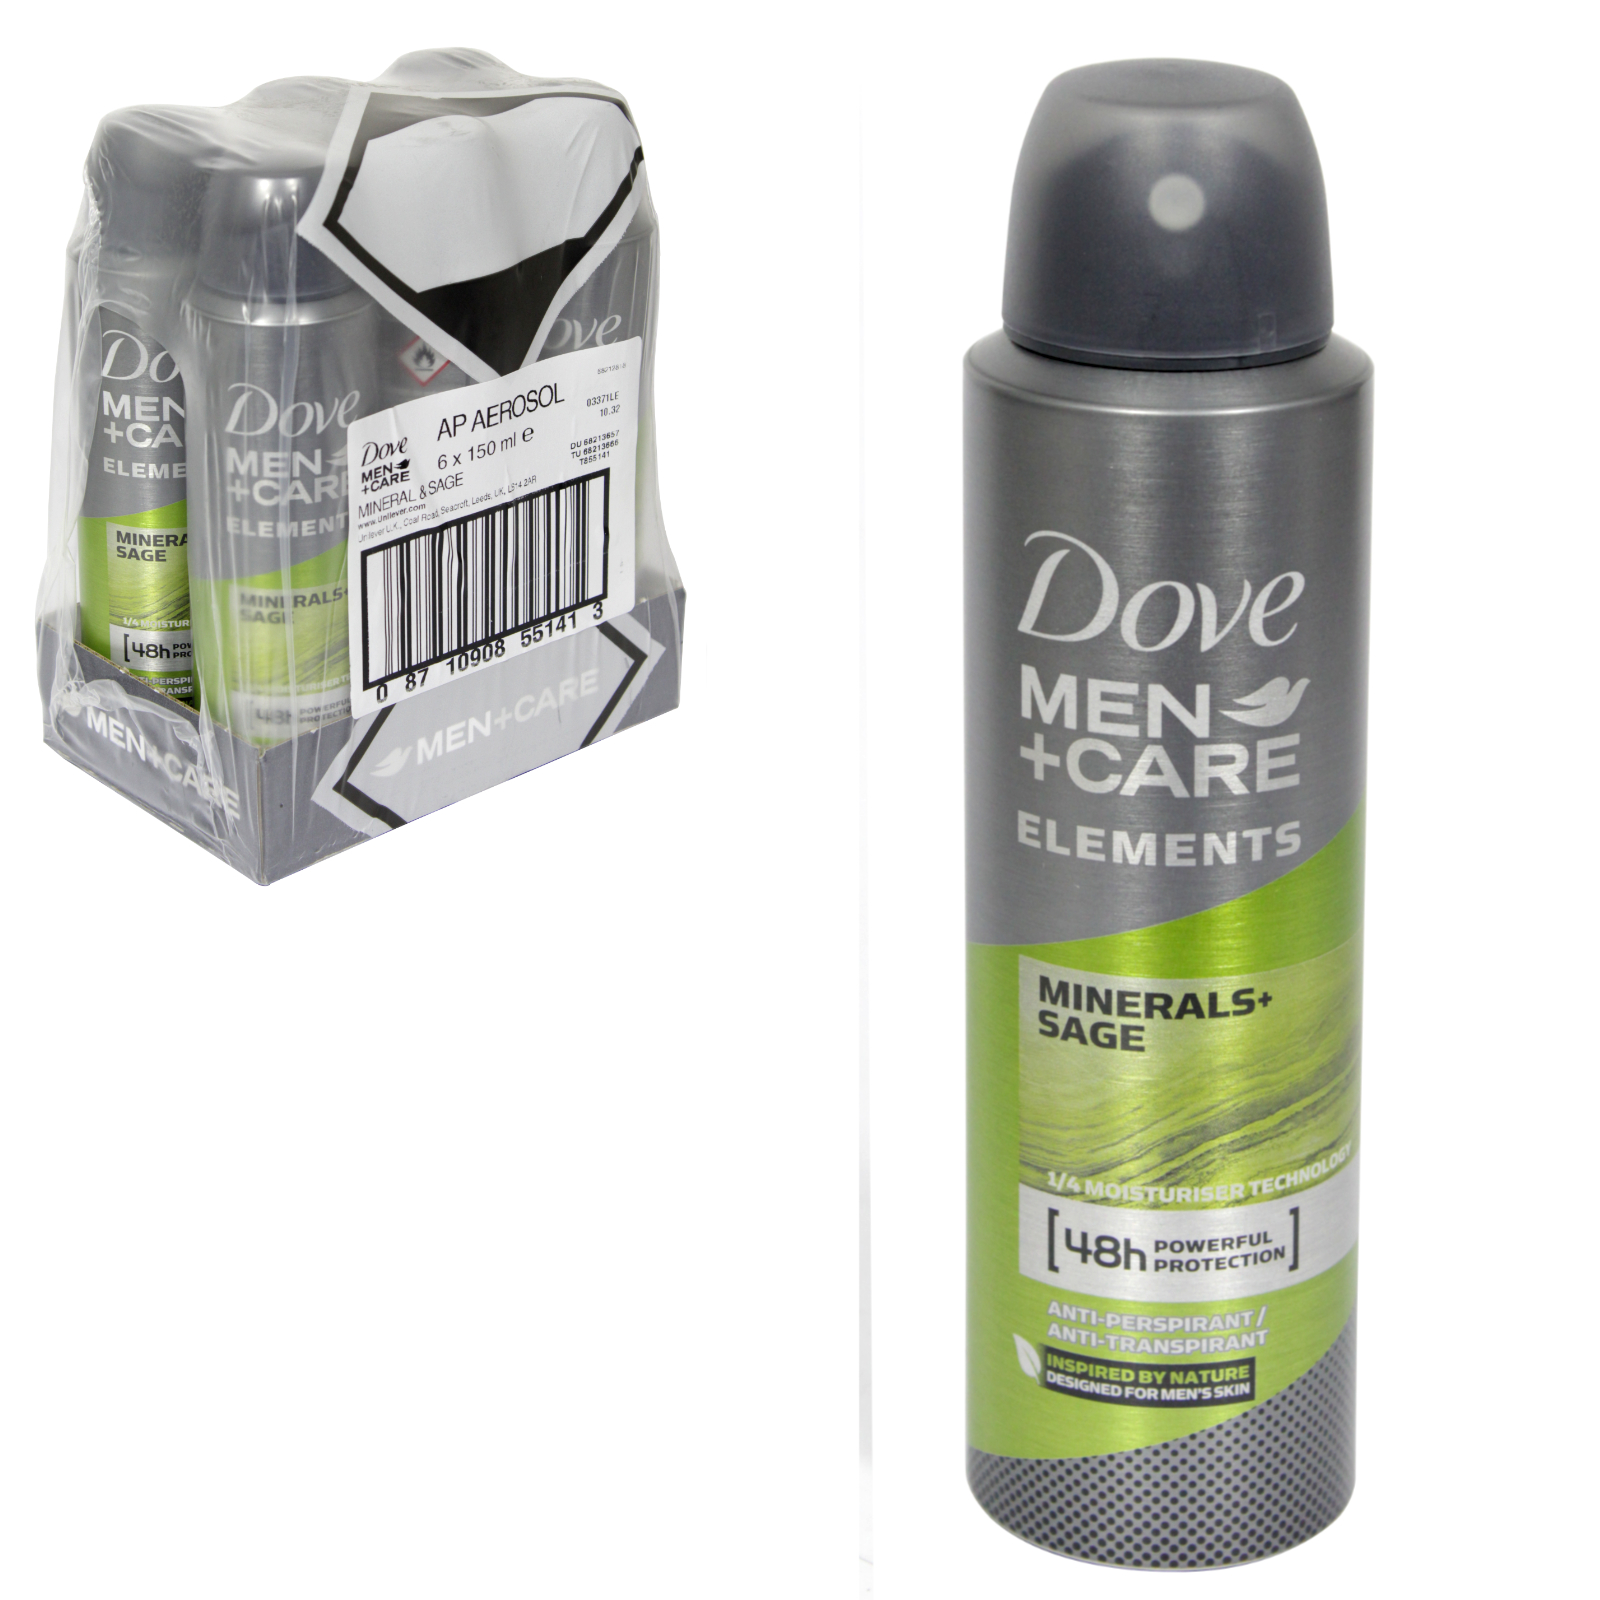 DOVE MEN+CARE APA 150ML MINERALS+SAGE X 6